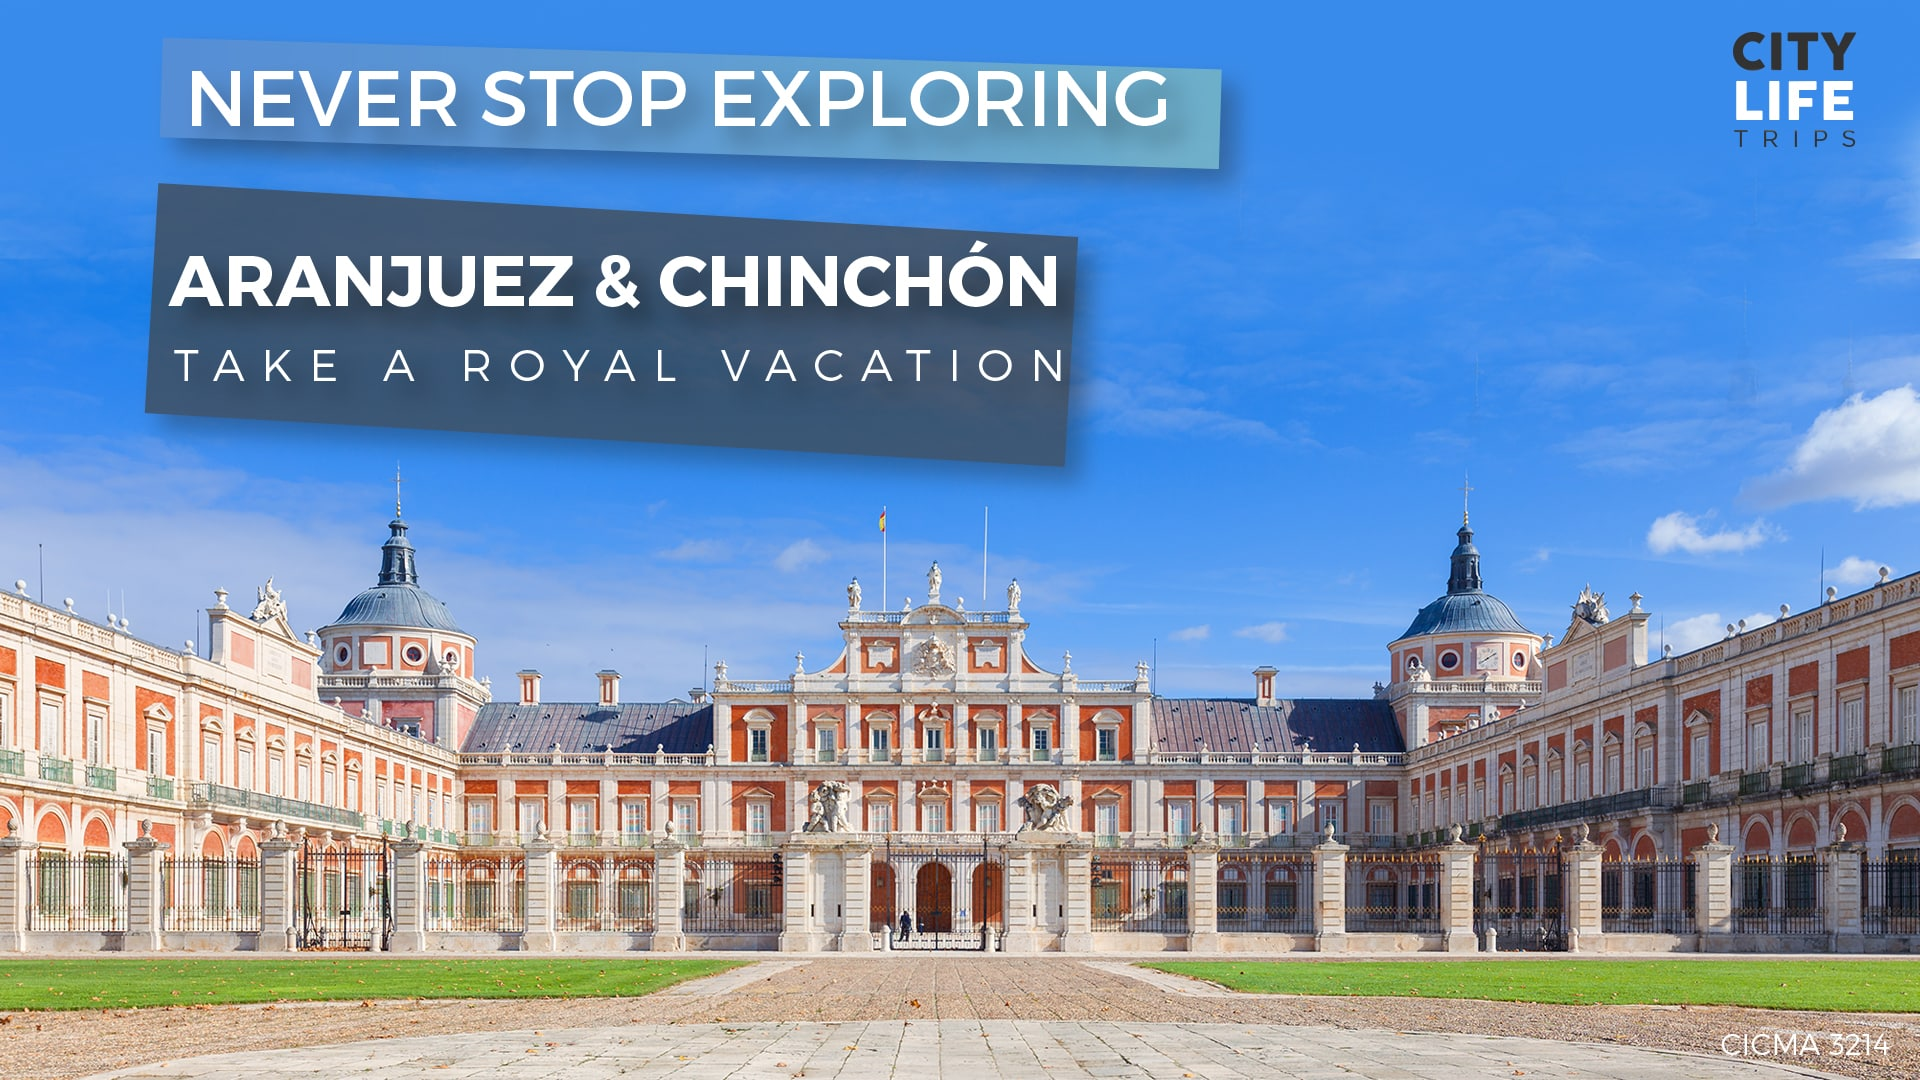 Aranjuez & Chinchón – Take a royal vacation